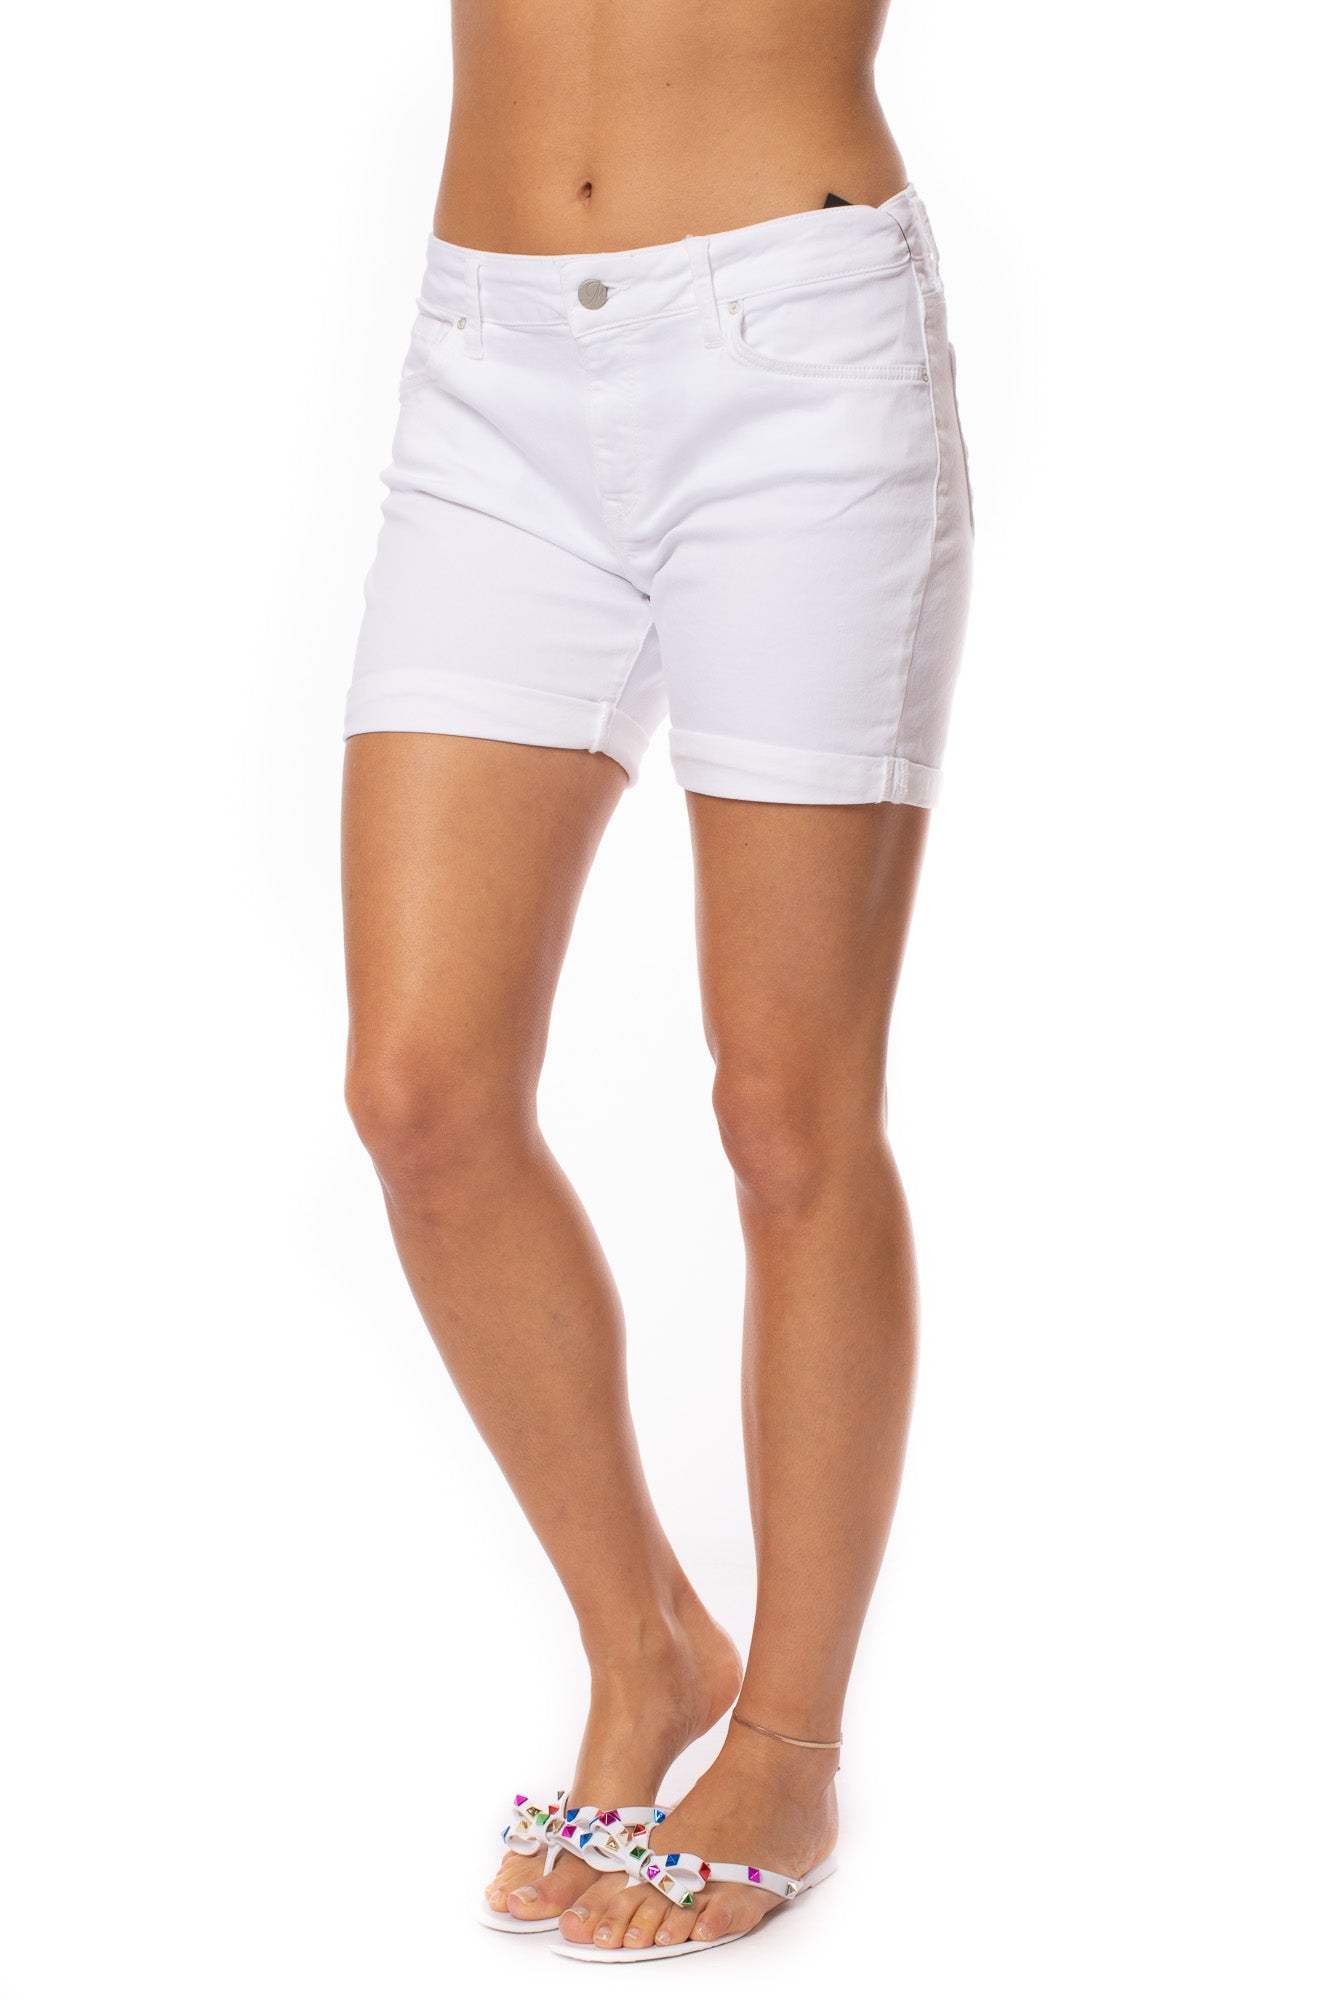 Mavi Jeans - Pixie White Tribeca Shorts (14370, White)